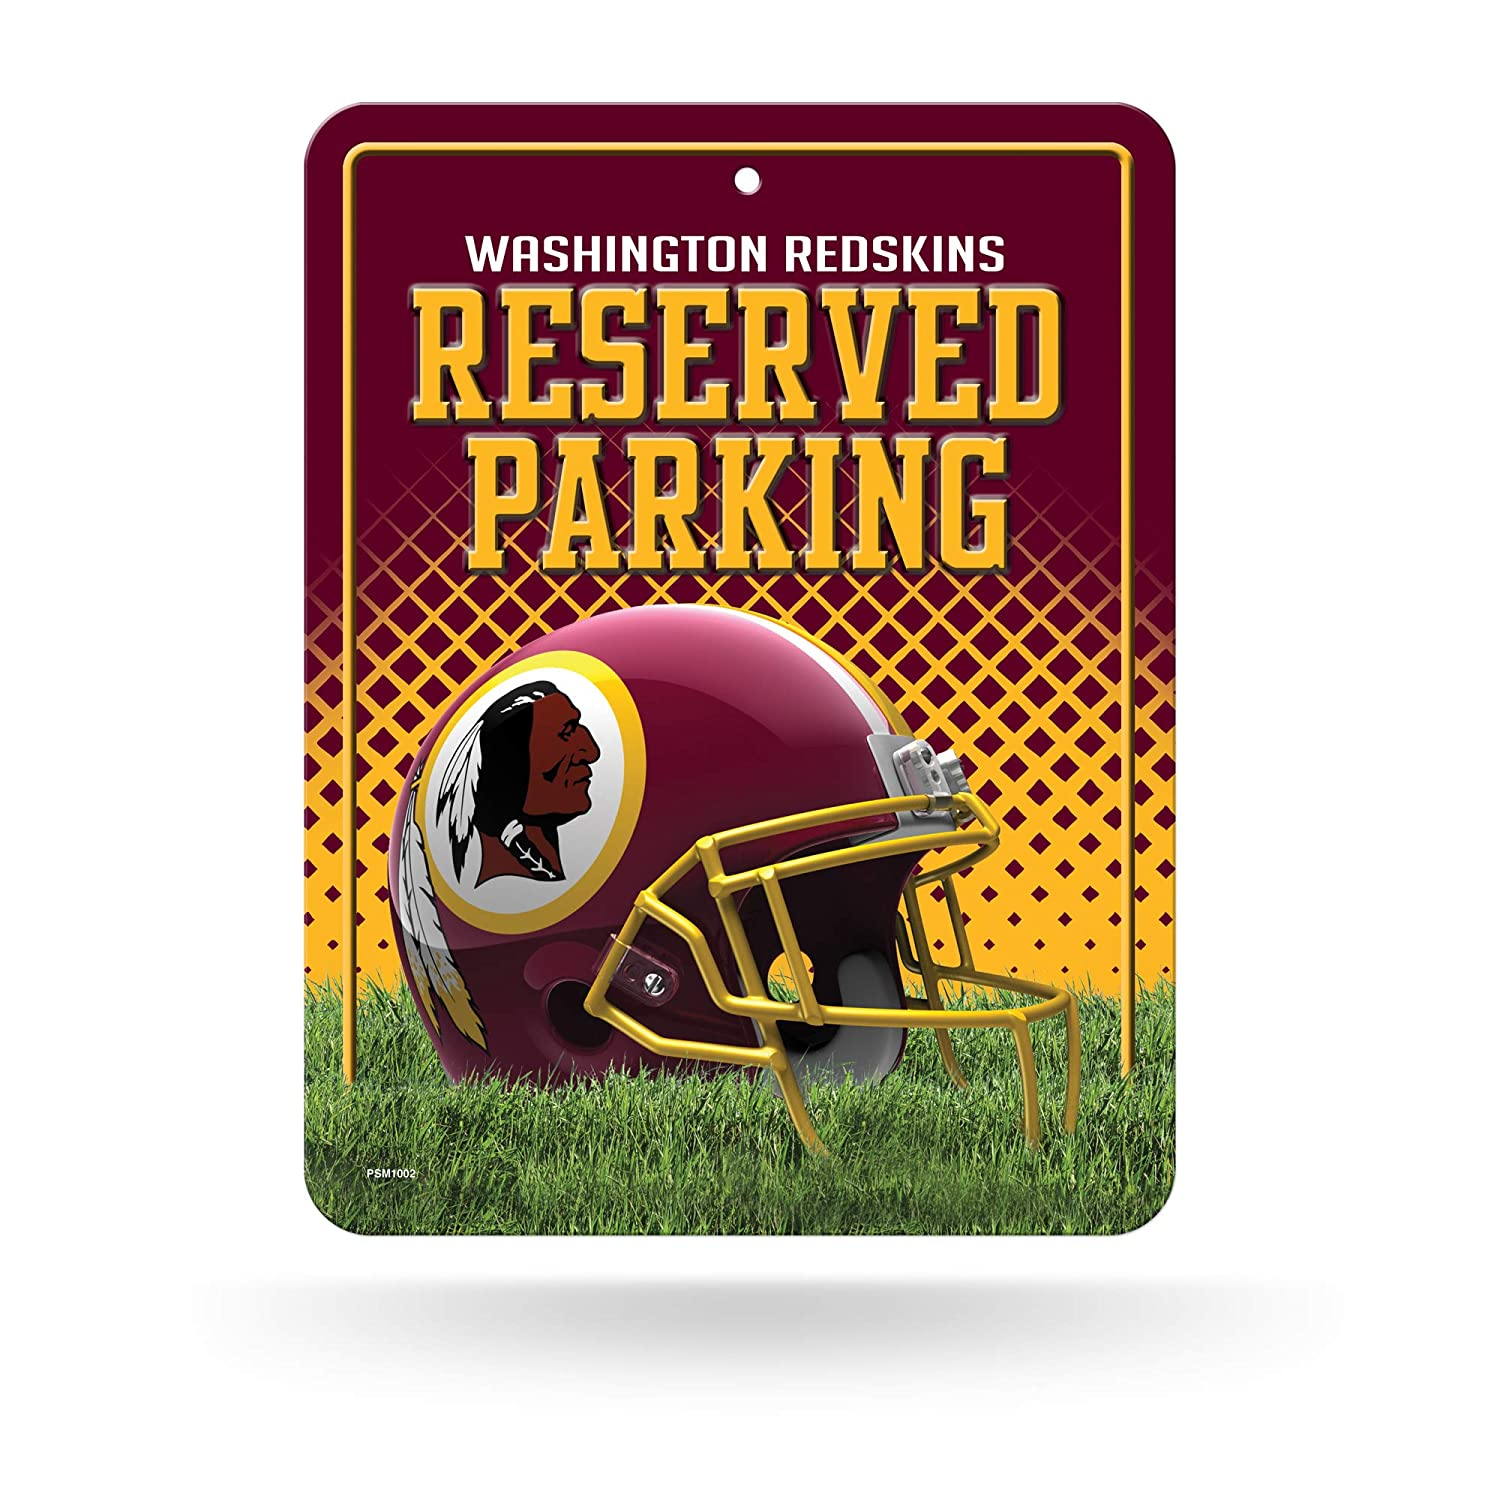 Metall Rico Parkschild NFL Washington 20,3 x 27,9 cm Redskins